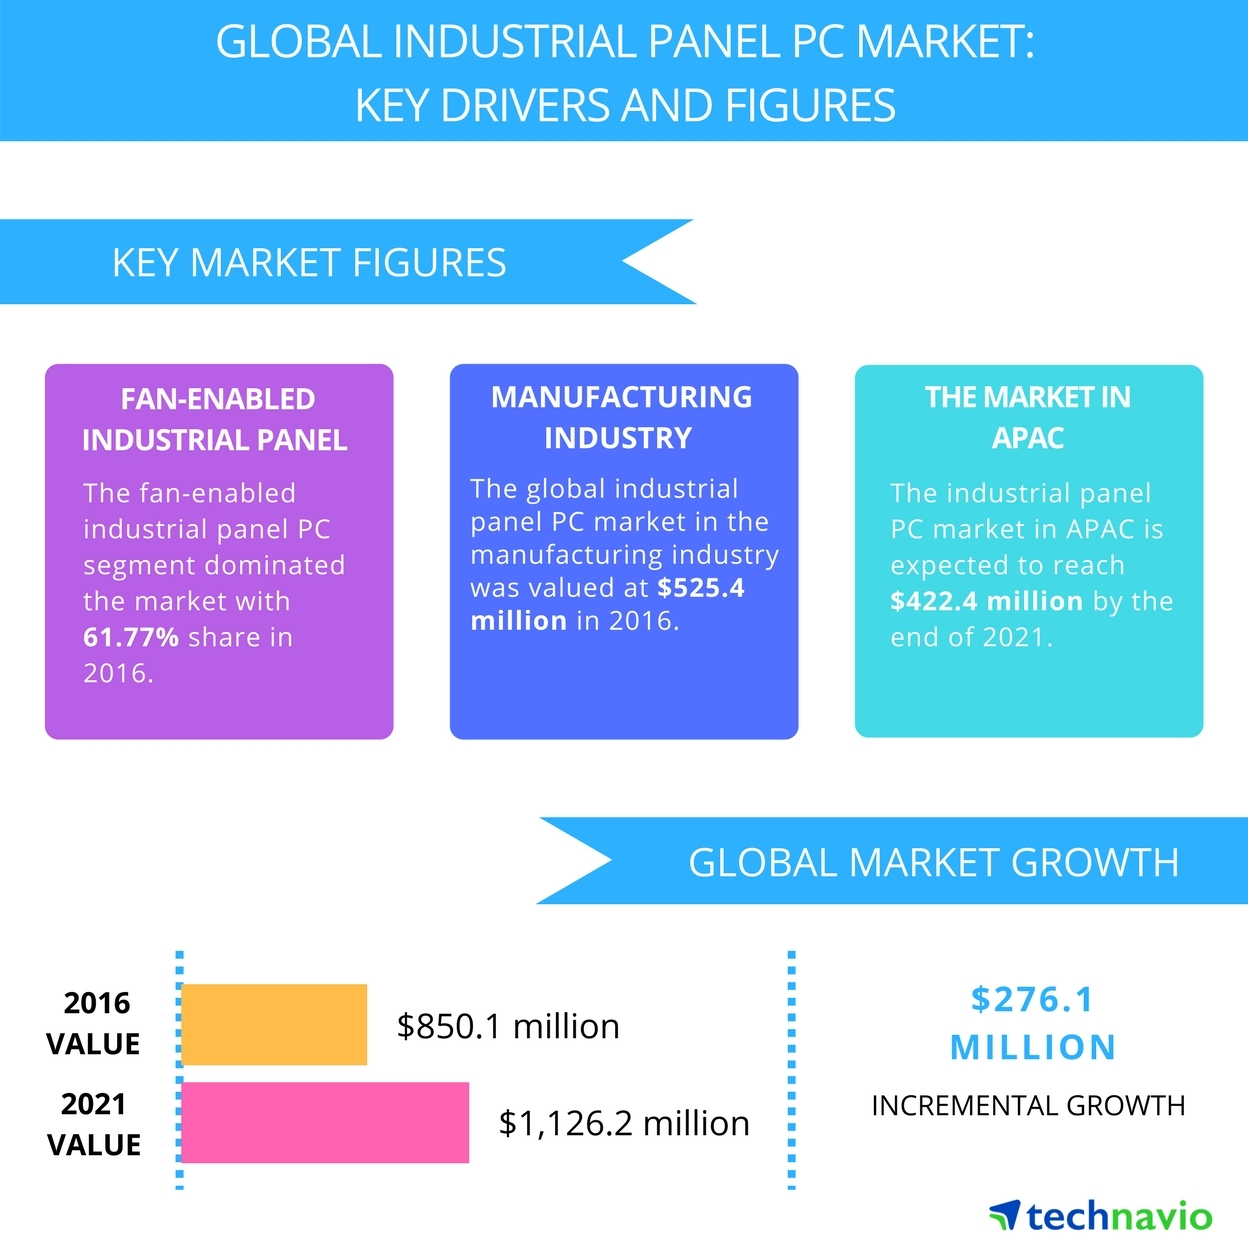 Technavio has published a new report on the global industrial panel PC market from 2017-2021. (Graphic: Business Wire)